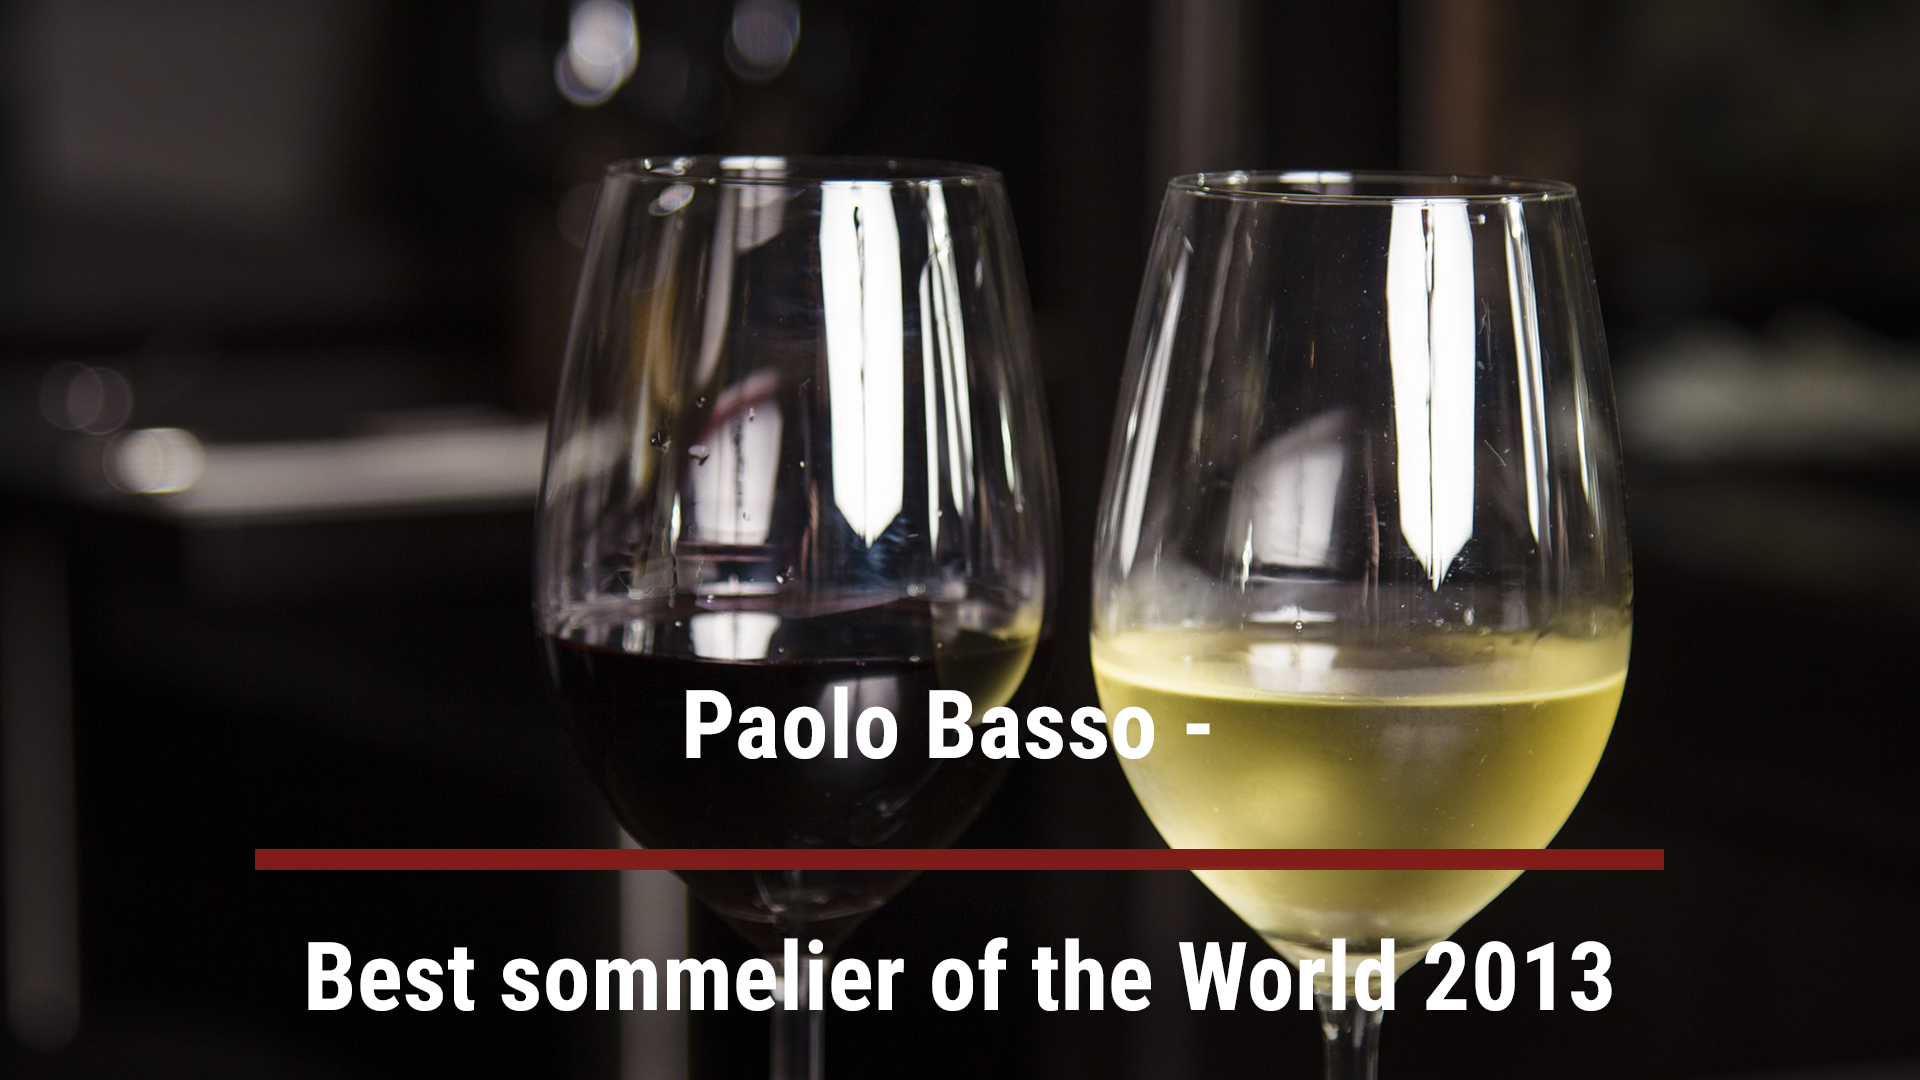 Paolo Basso – Best sommelier of the World 2013